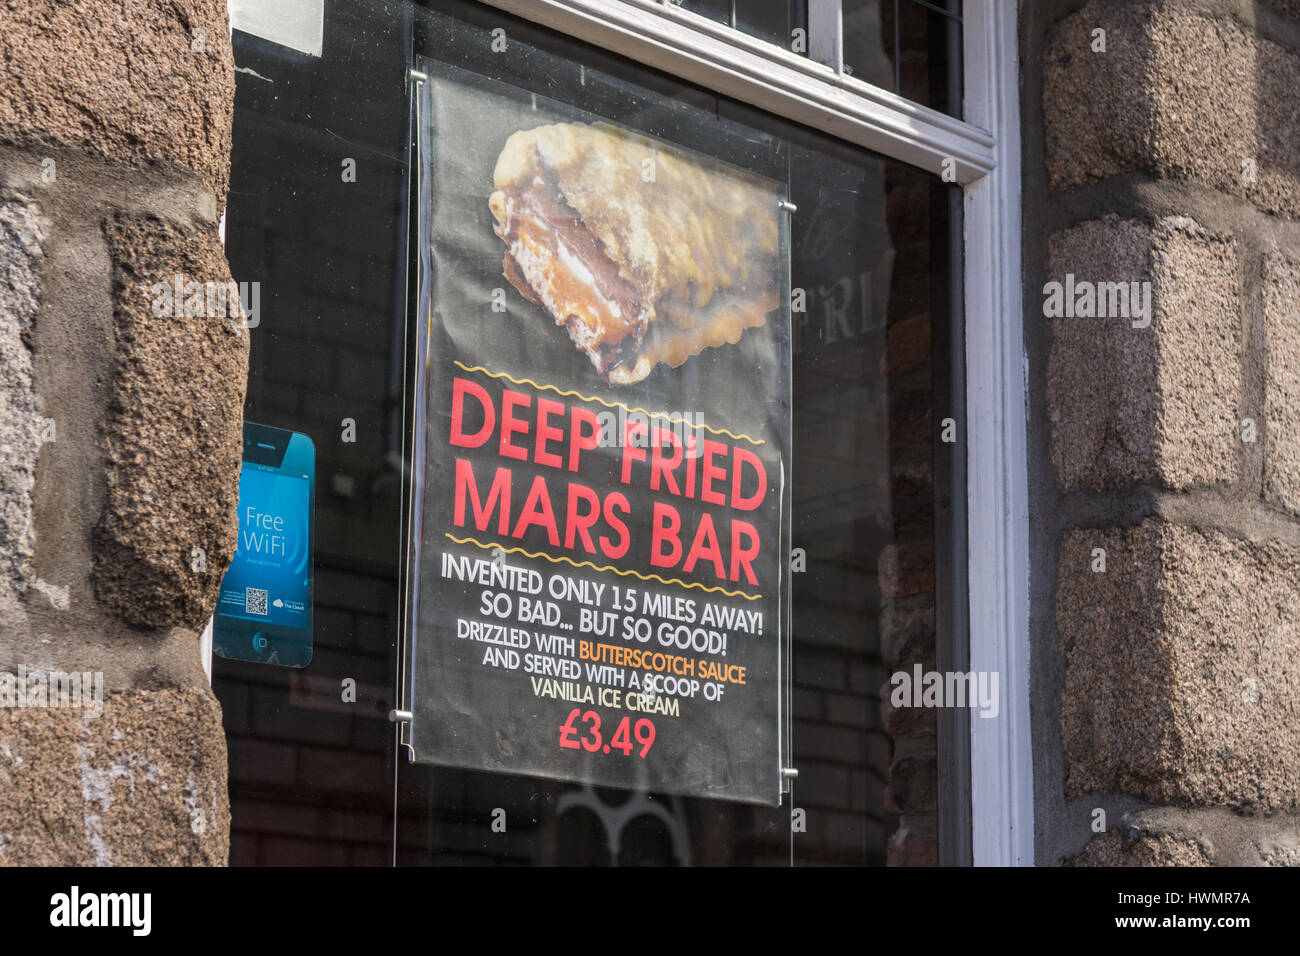 Deep Fried Mars Bar advertising poster in the window of the Old Blackfriars pub in Aberdeen city centre, Scotland, - Stock Image